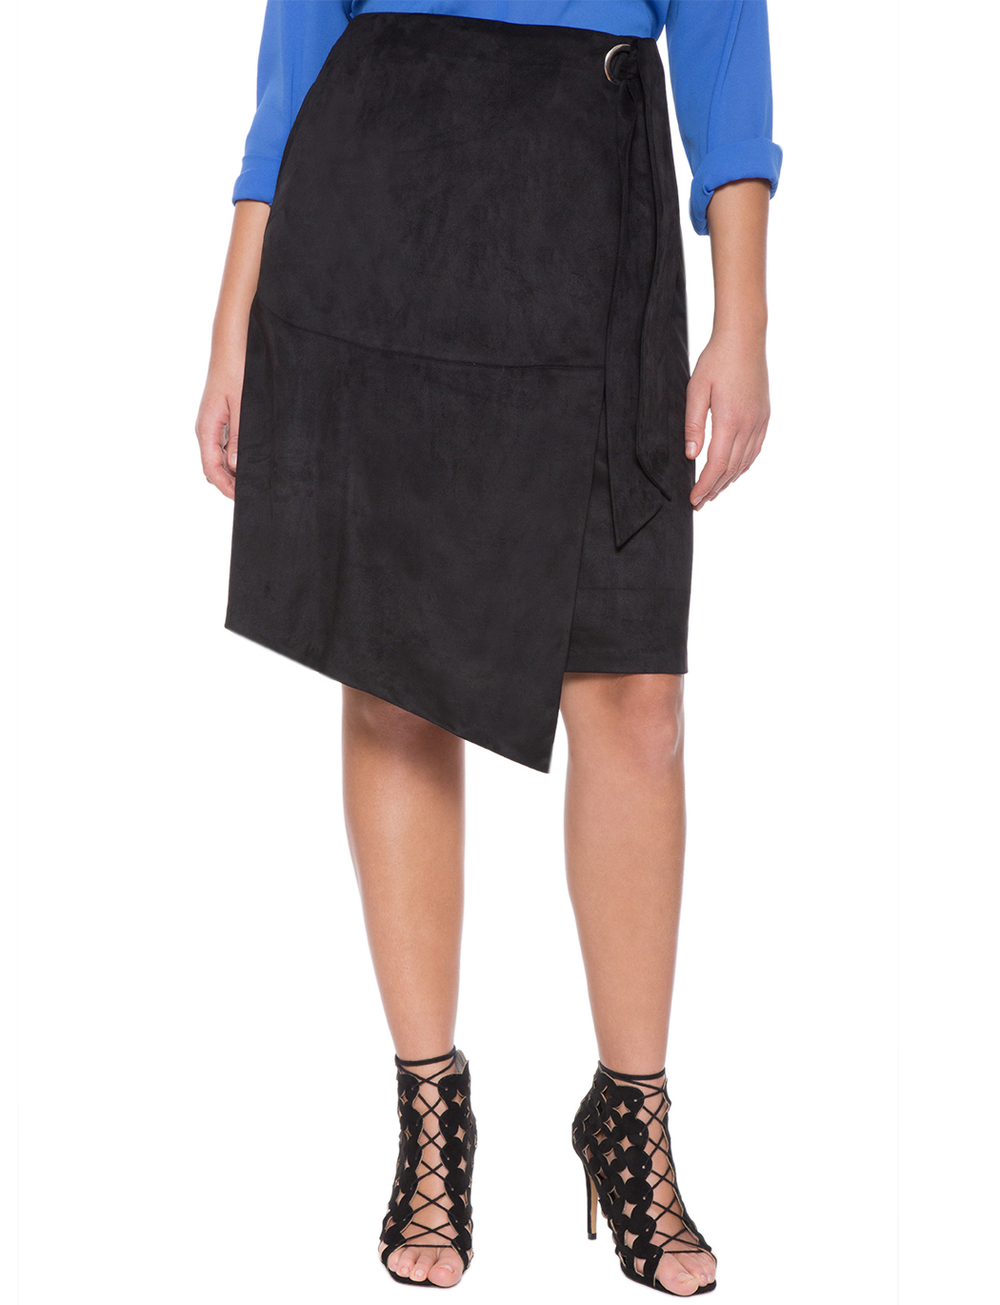 Faux Suede Wrap Skirt. Eloquii. Was: $79. Take an additional 60% off with code: SHOPMAY.